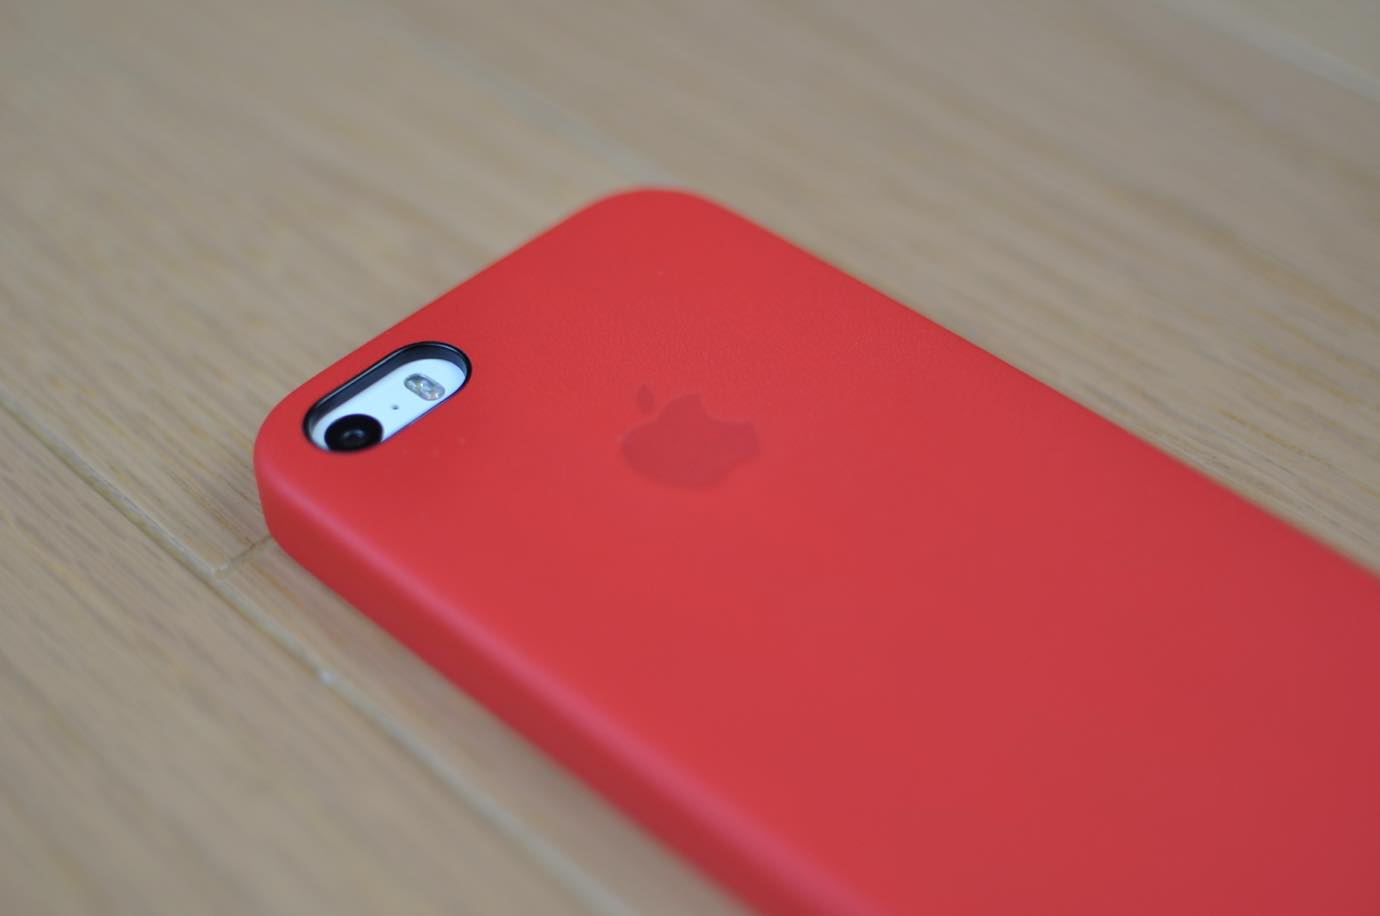 IPhone 5s Case   PRODUCT RED 03 20141215 214946